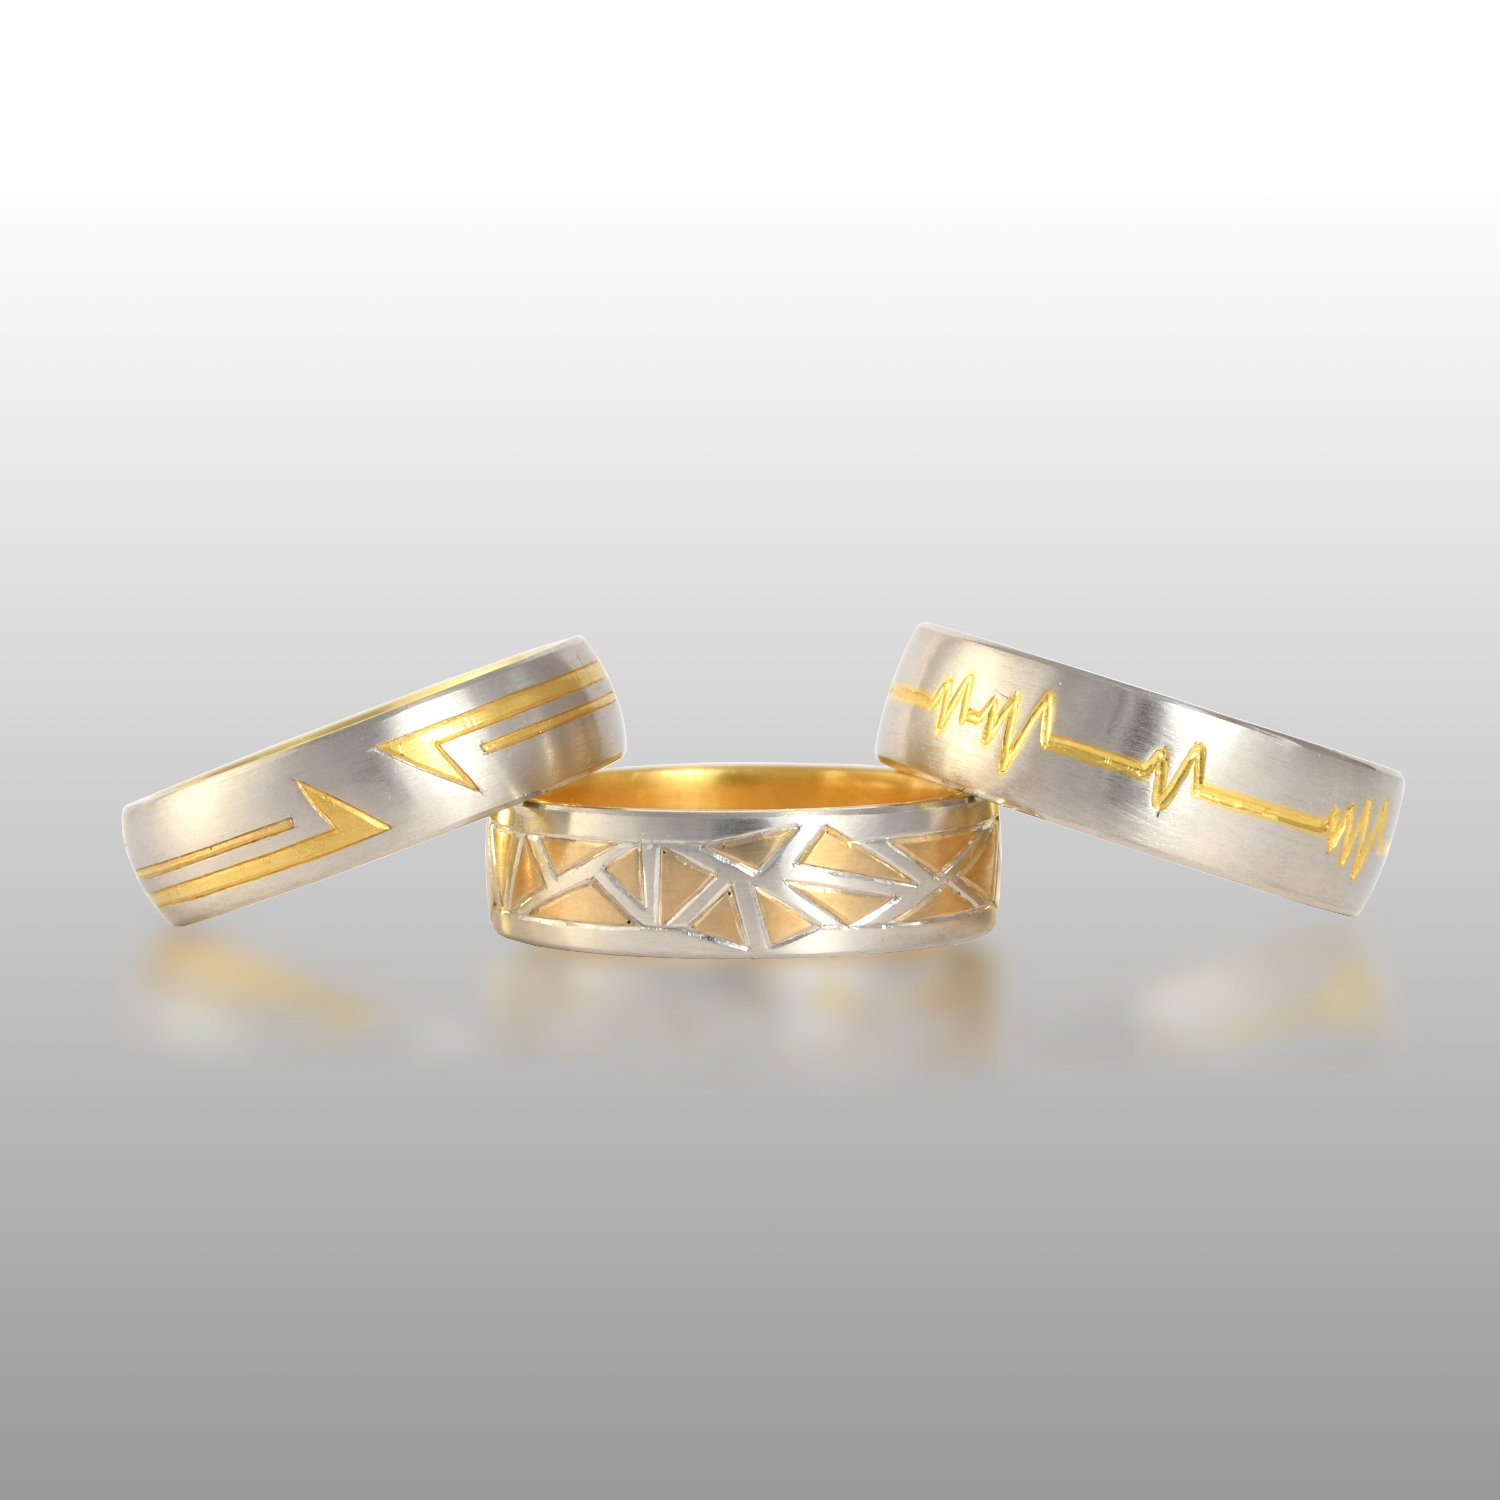 Men's Platinum & 22k Gold Wedding Bands 'Fusion' by Pratima Design Fine Art Jewelry Maui, Hawaii